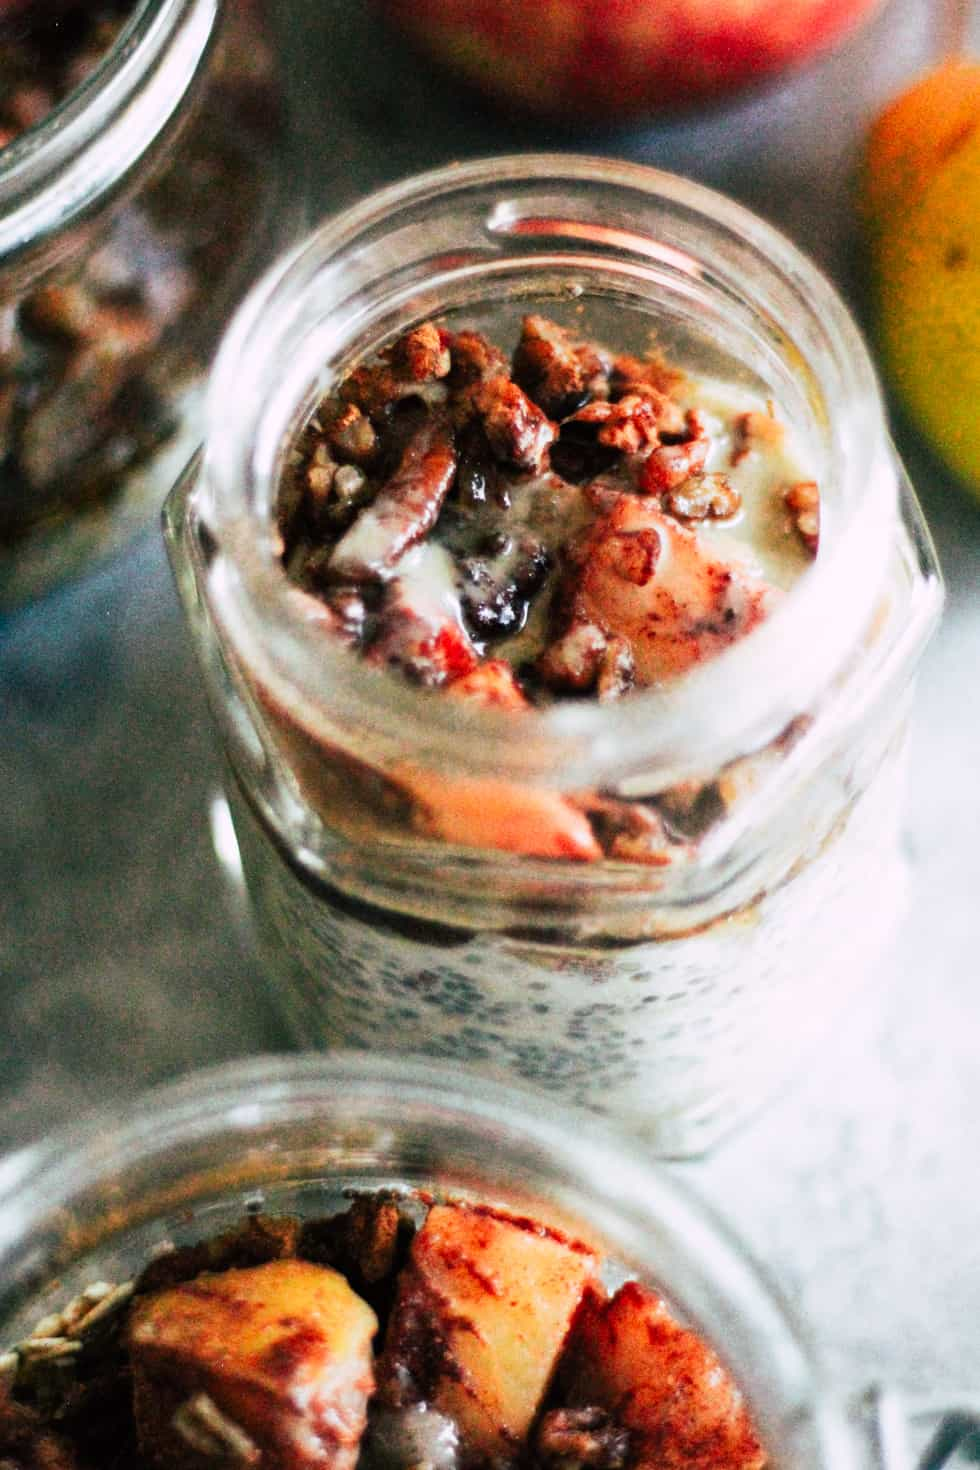 Jars filled with fruit and nuts.